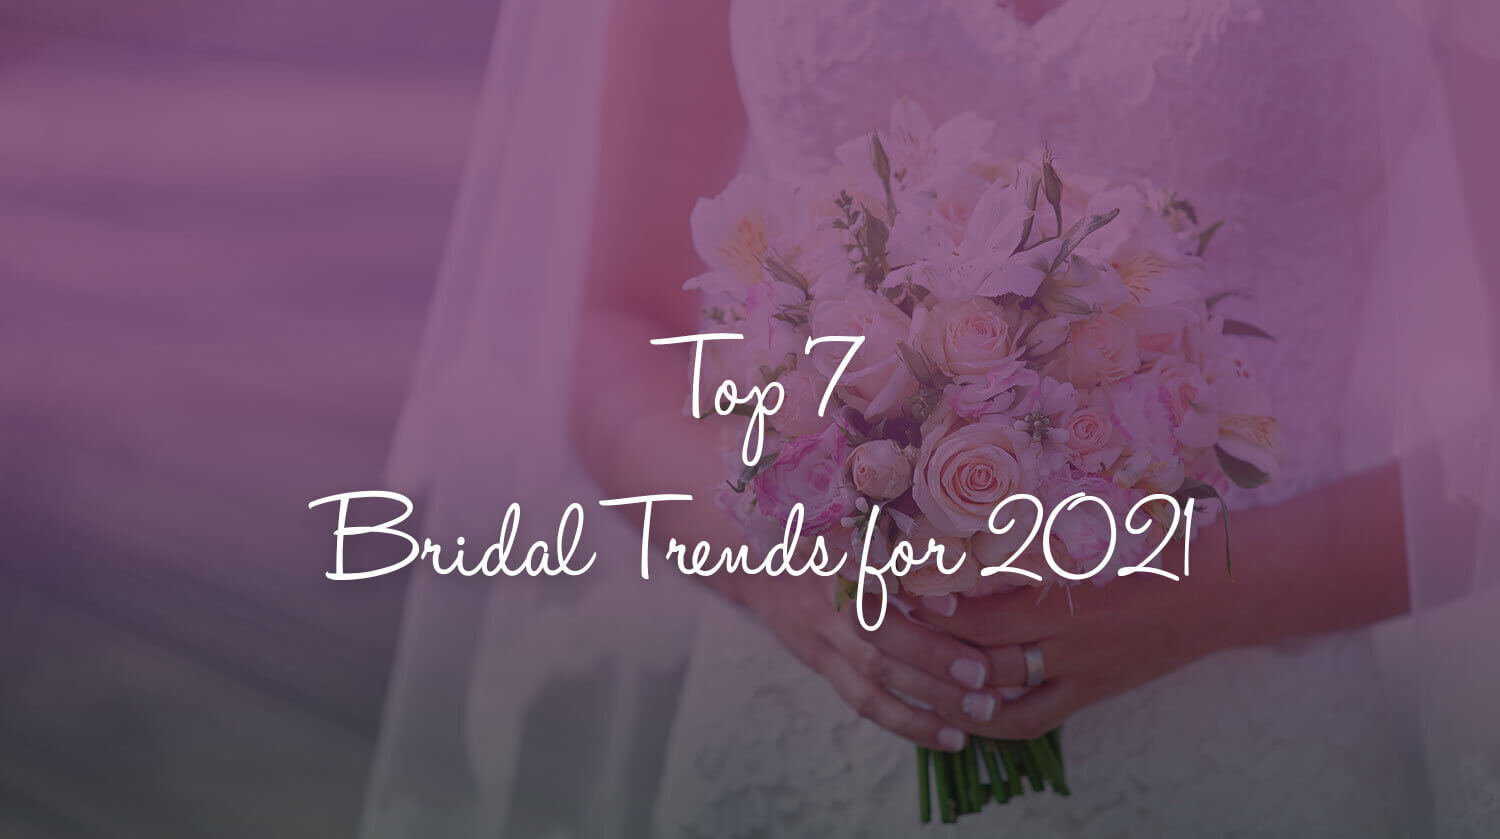 Top 7 Bridal Trends for 2021